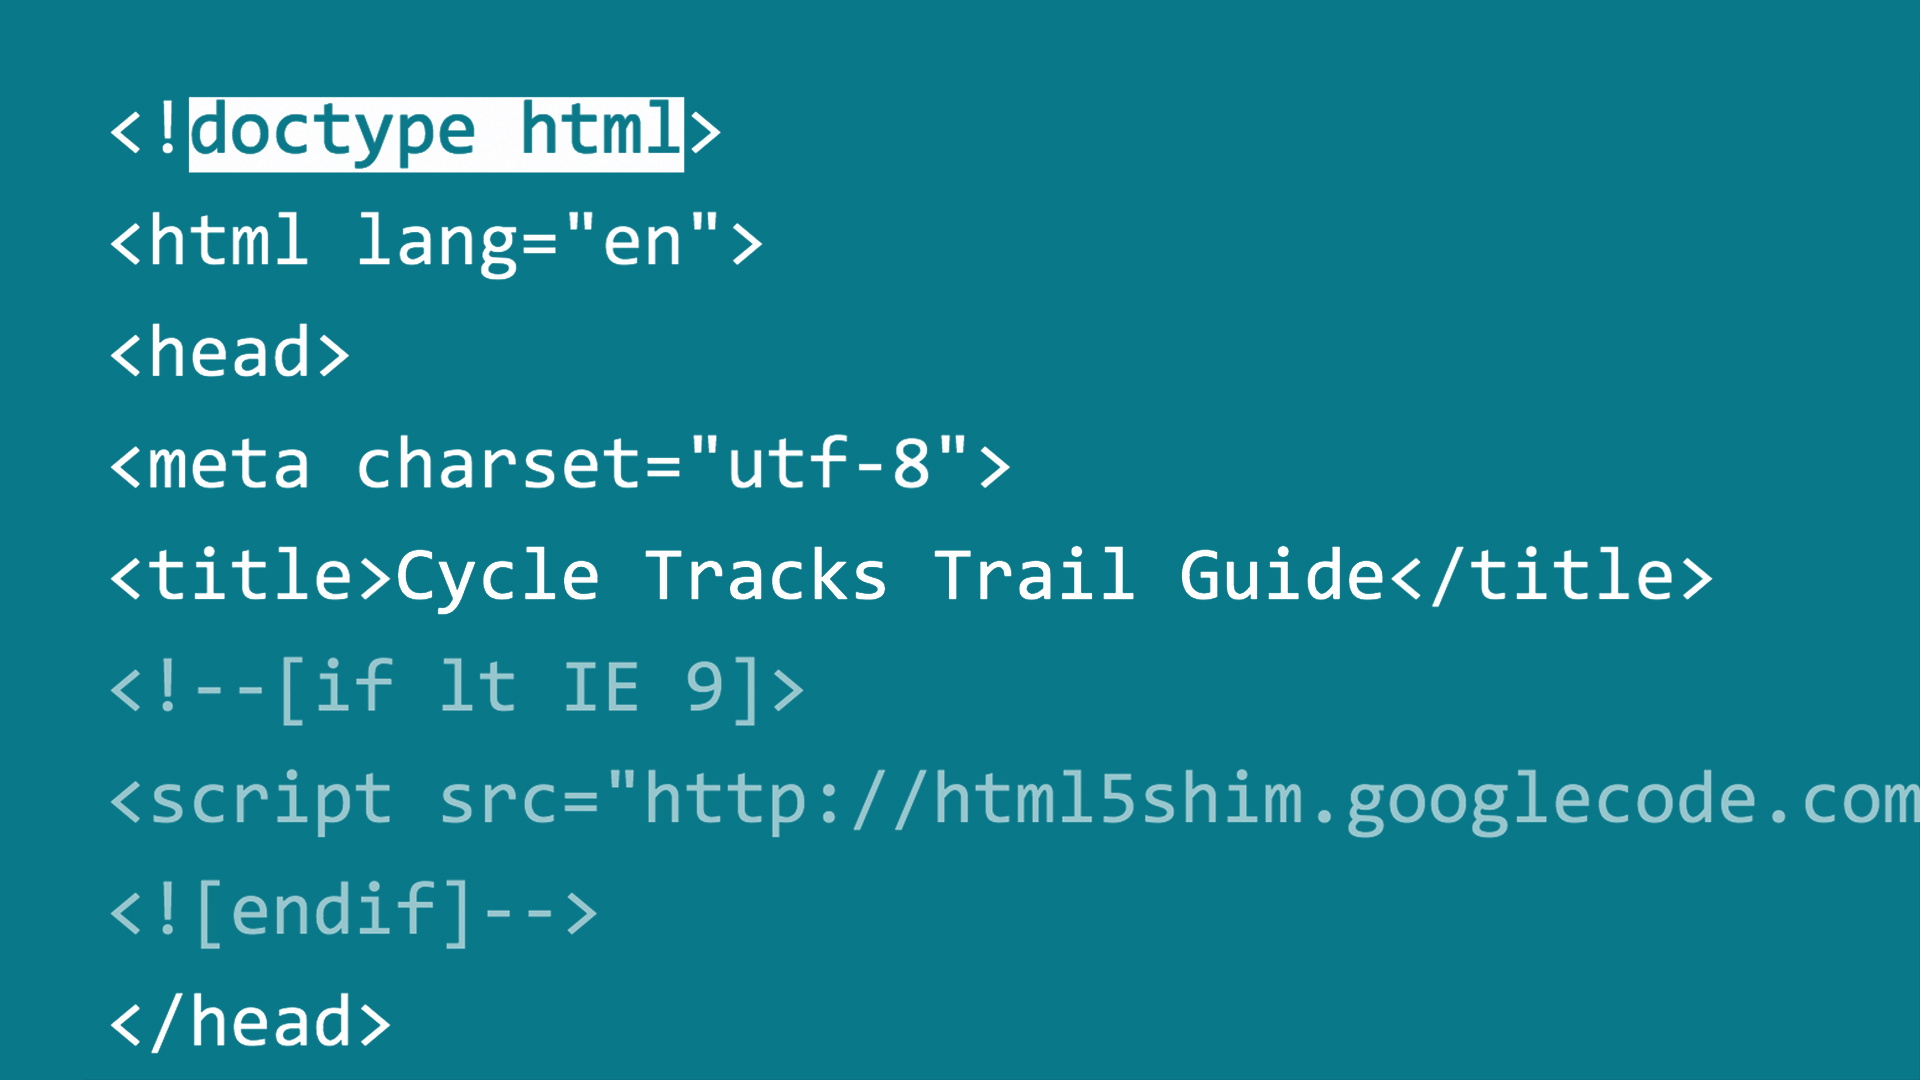 Html5: Structure, Syntax, And Semantics